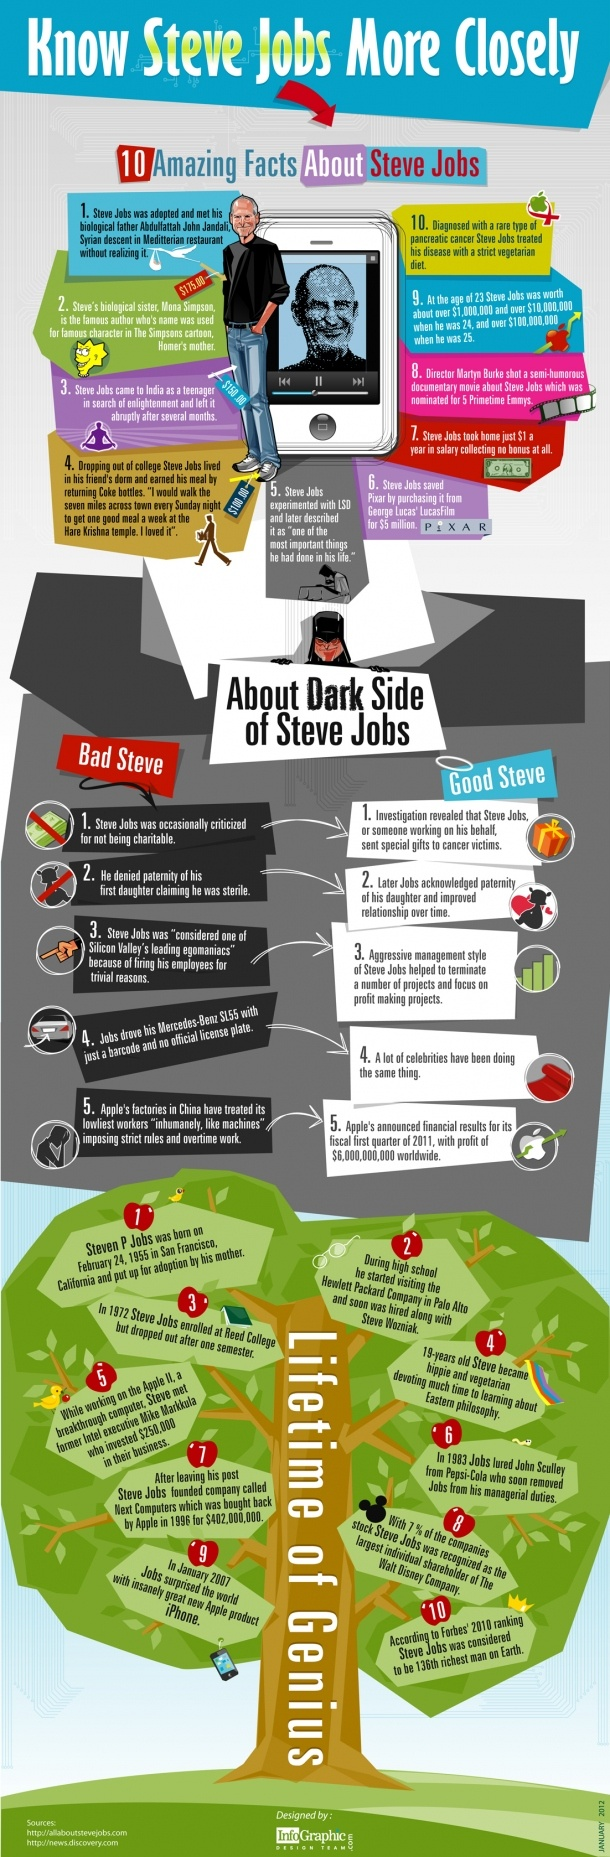 Know Steve Jobs More Closely: 10 Amazing Facts About Steve Jobs